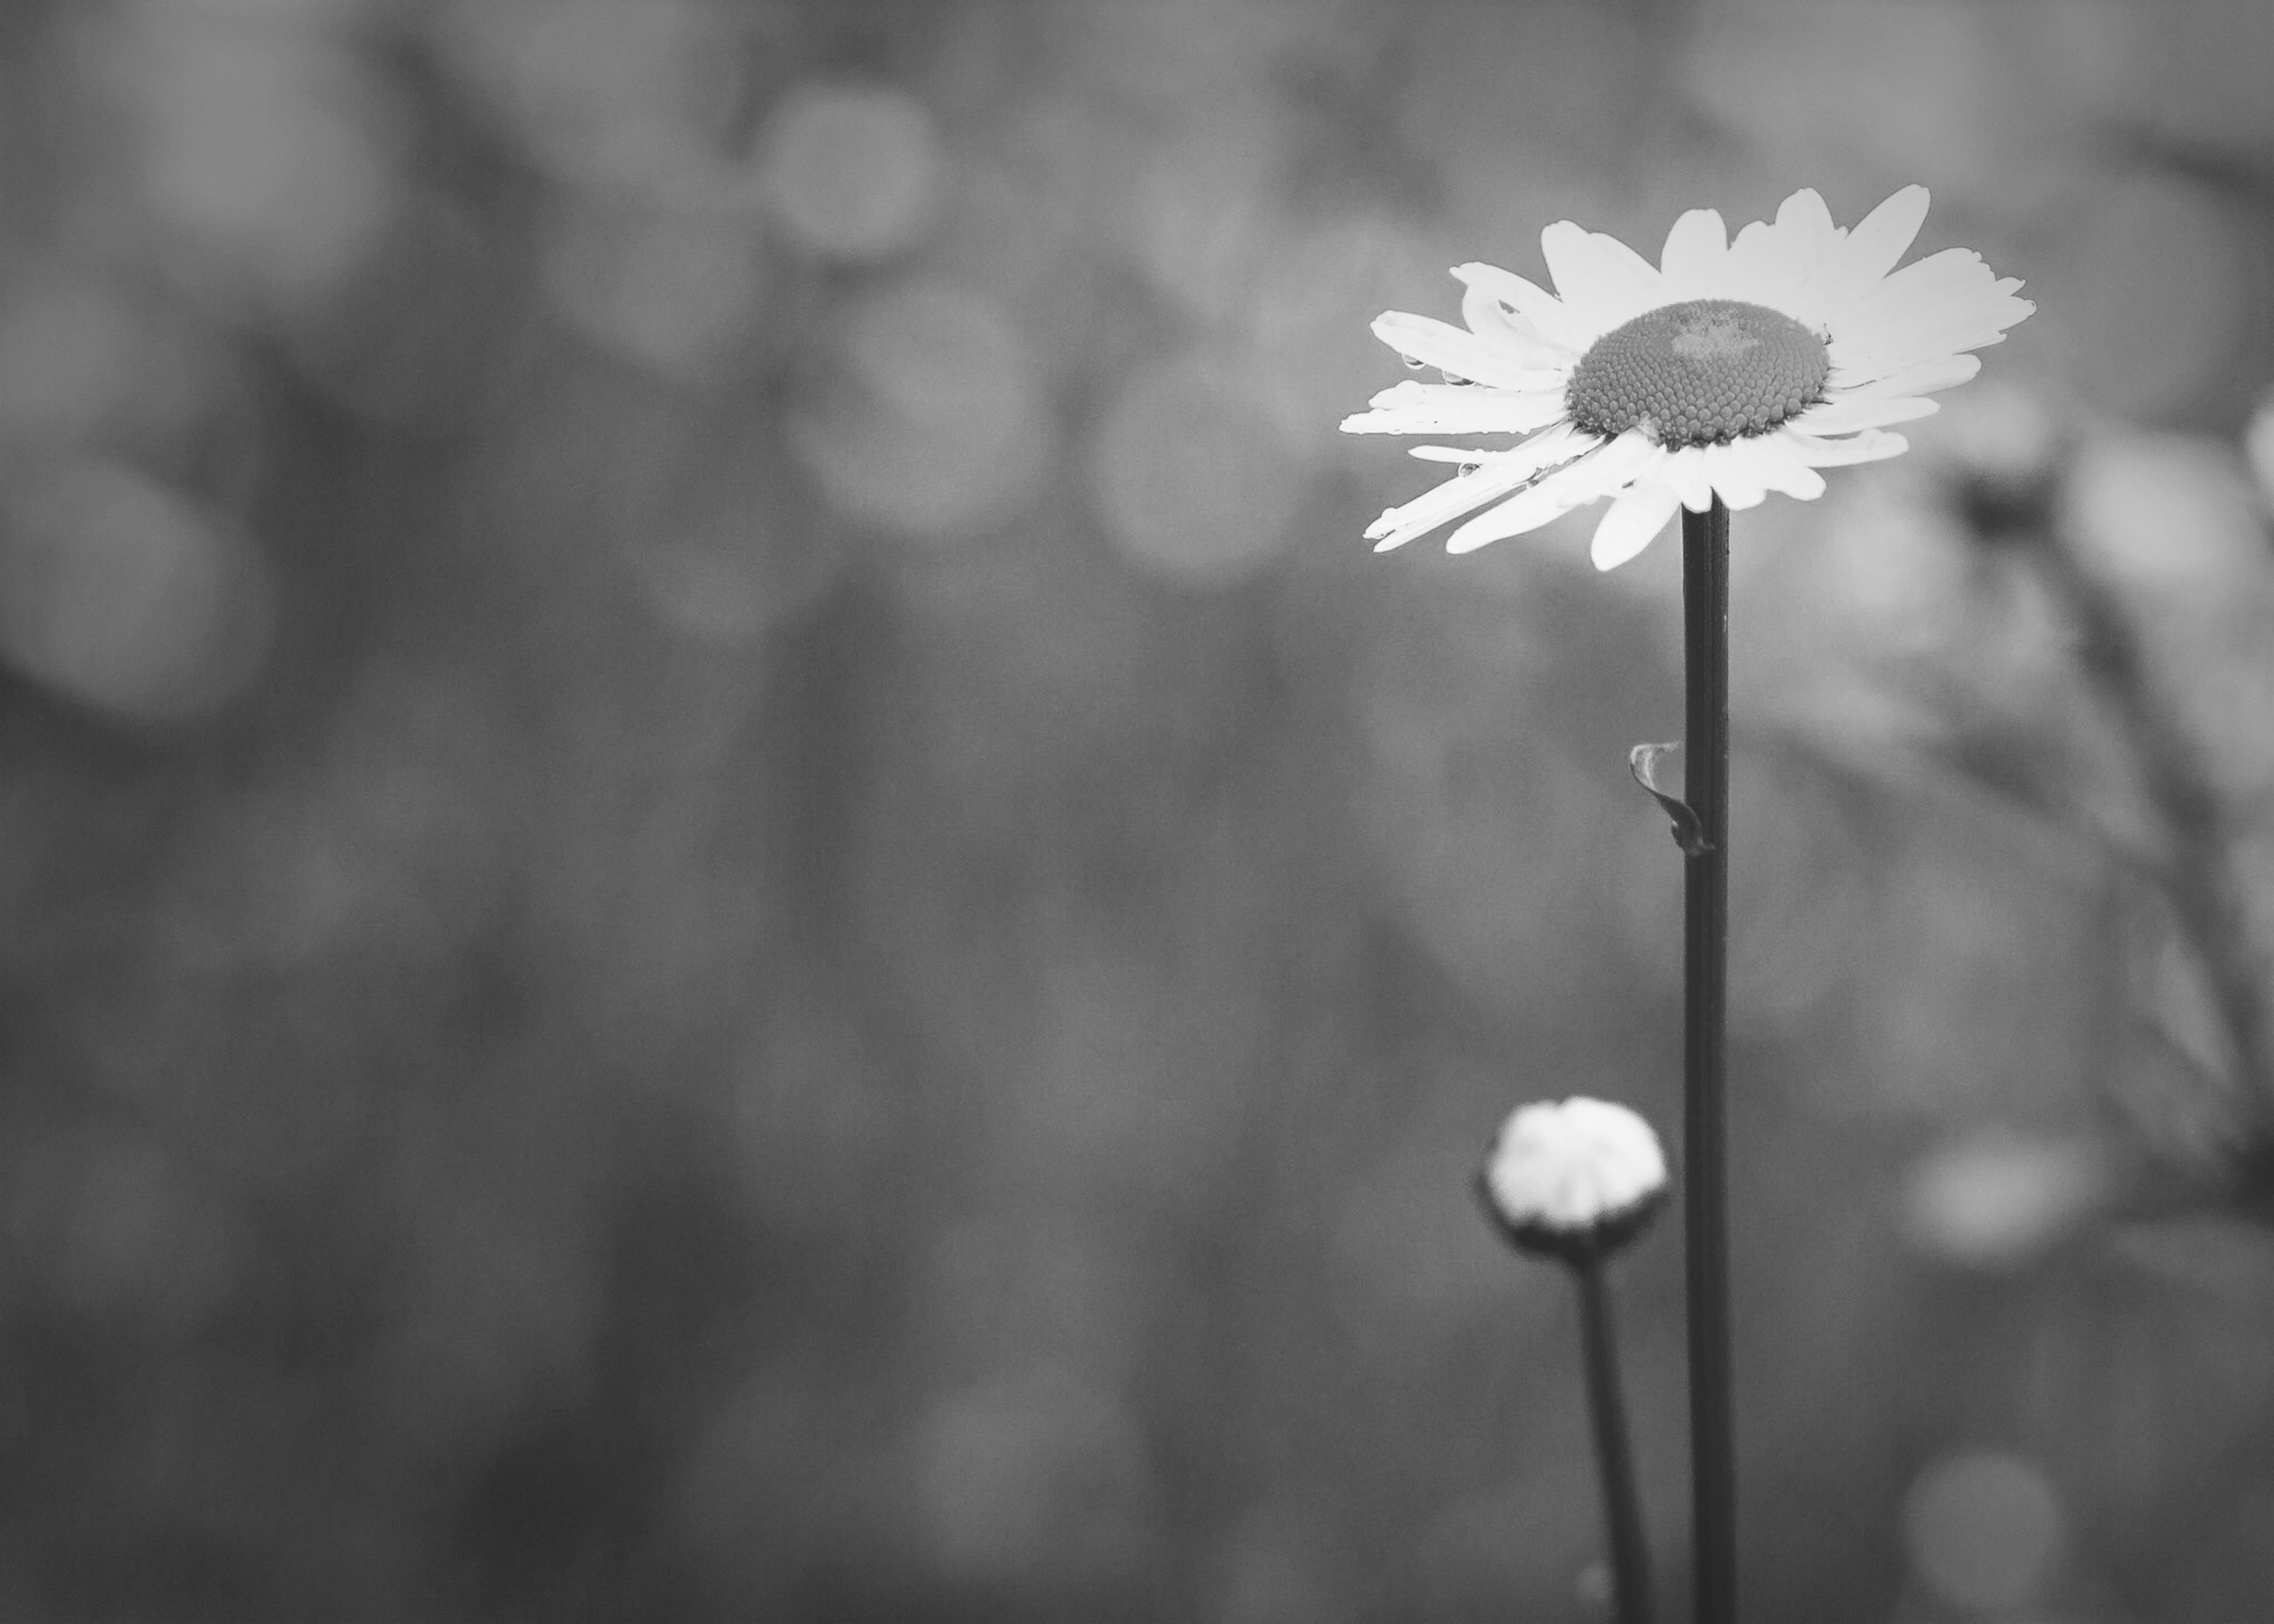 flower, fragility, growth, freshness, focus on foreground, stem, beauty in nature, close-up, nature, flower head, plant, petal, lighting equipment, blooming, dandelion, outdoors, in bloom, selective focus, white color, no people